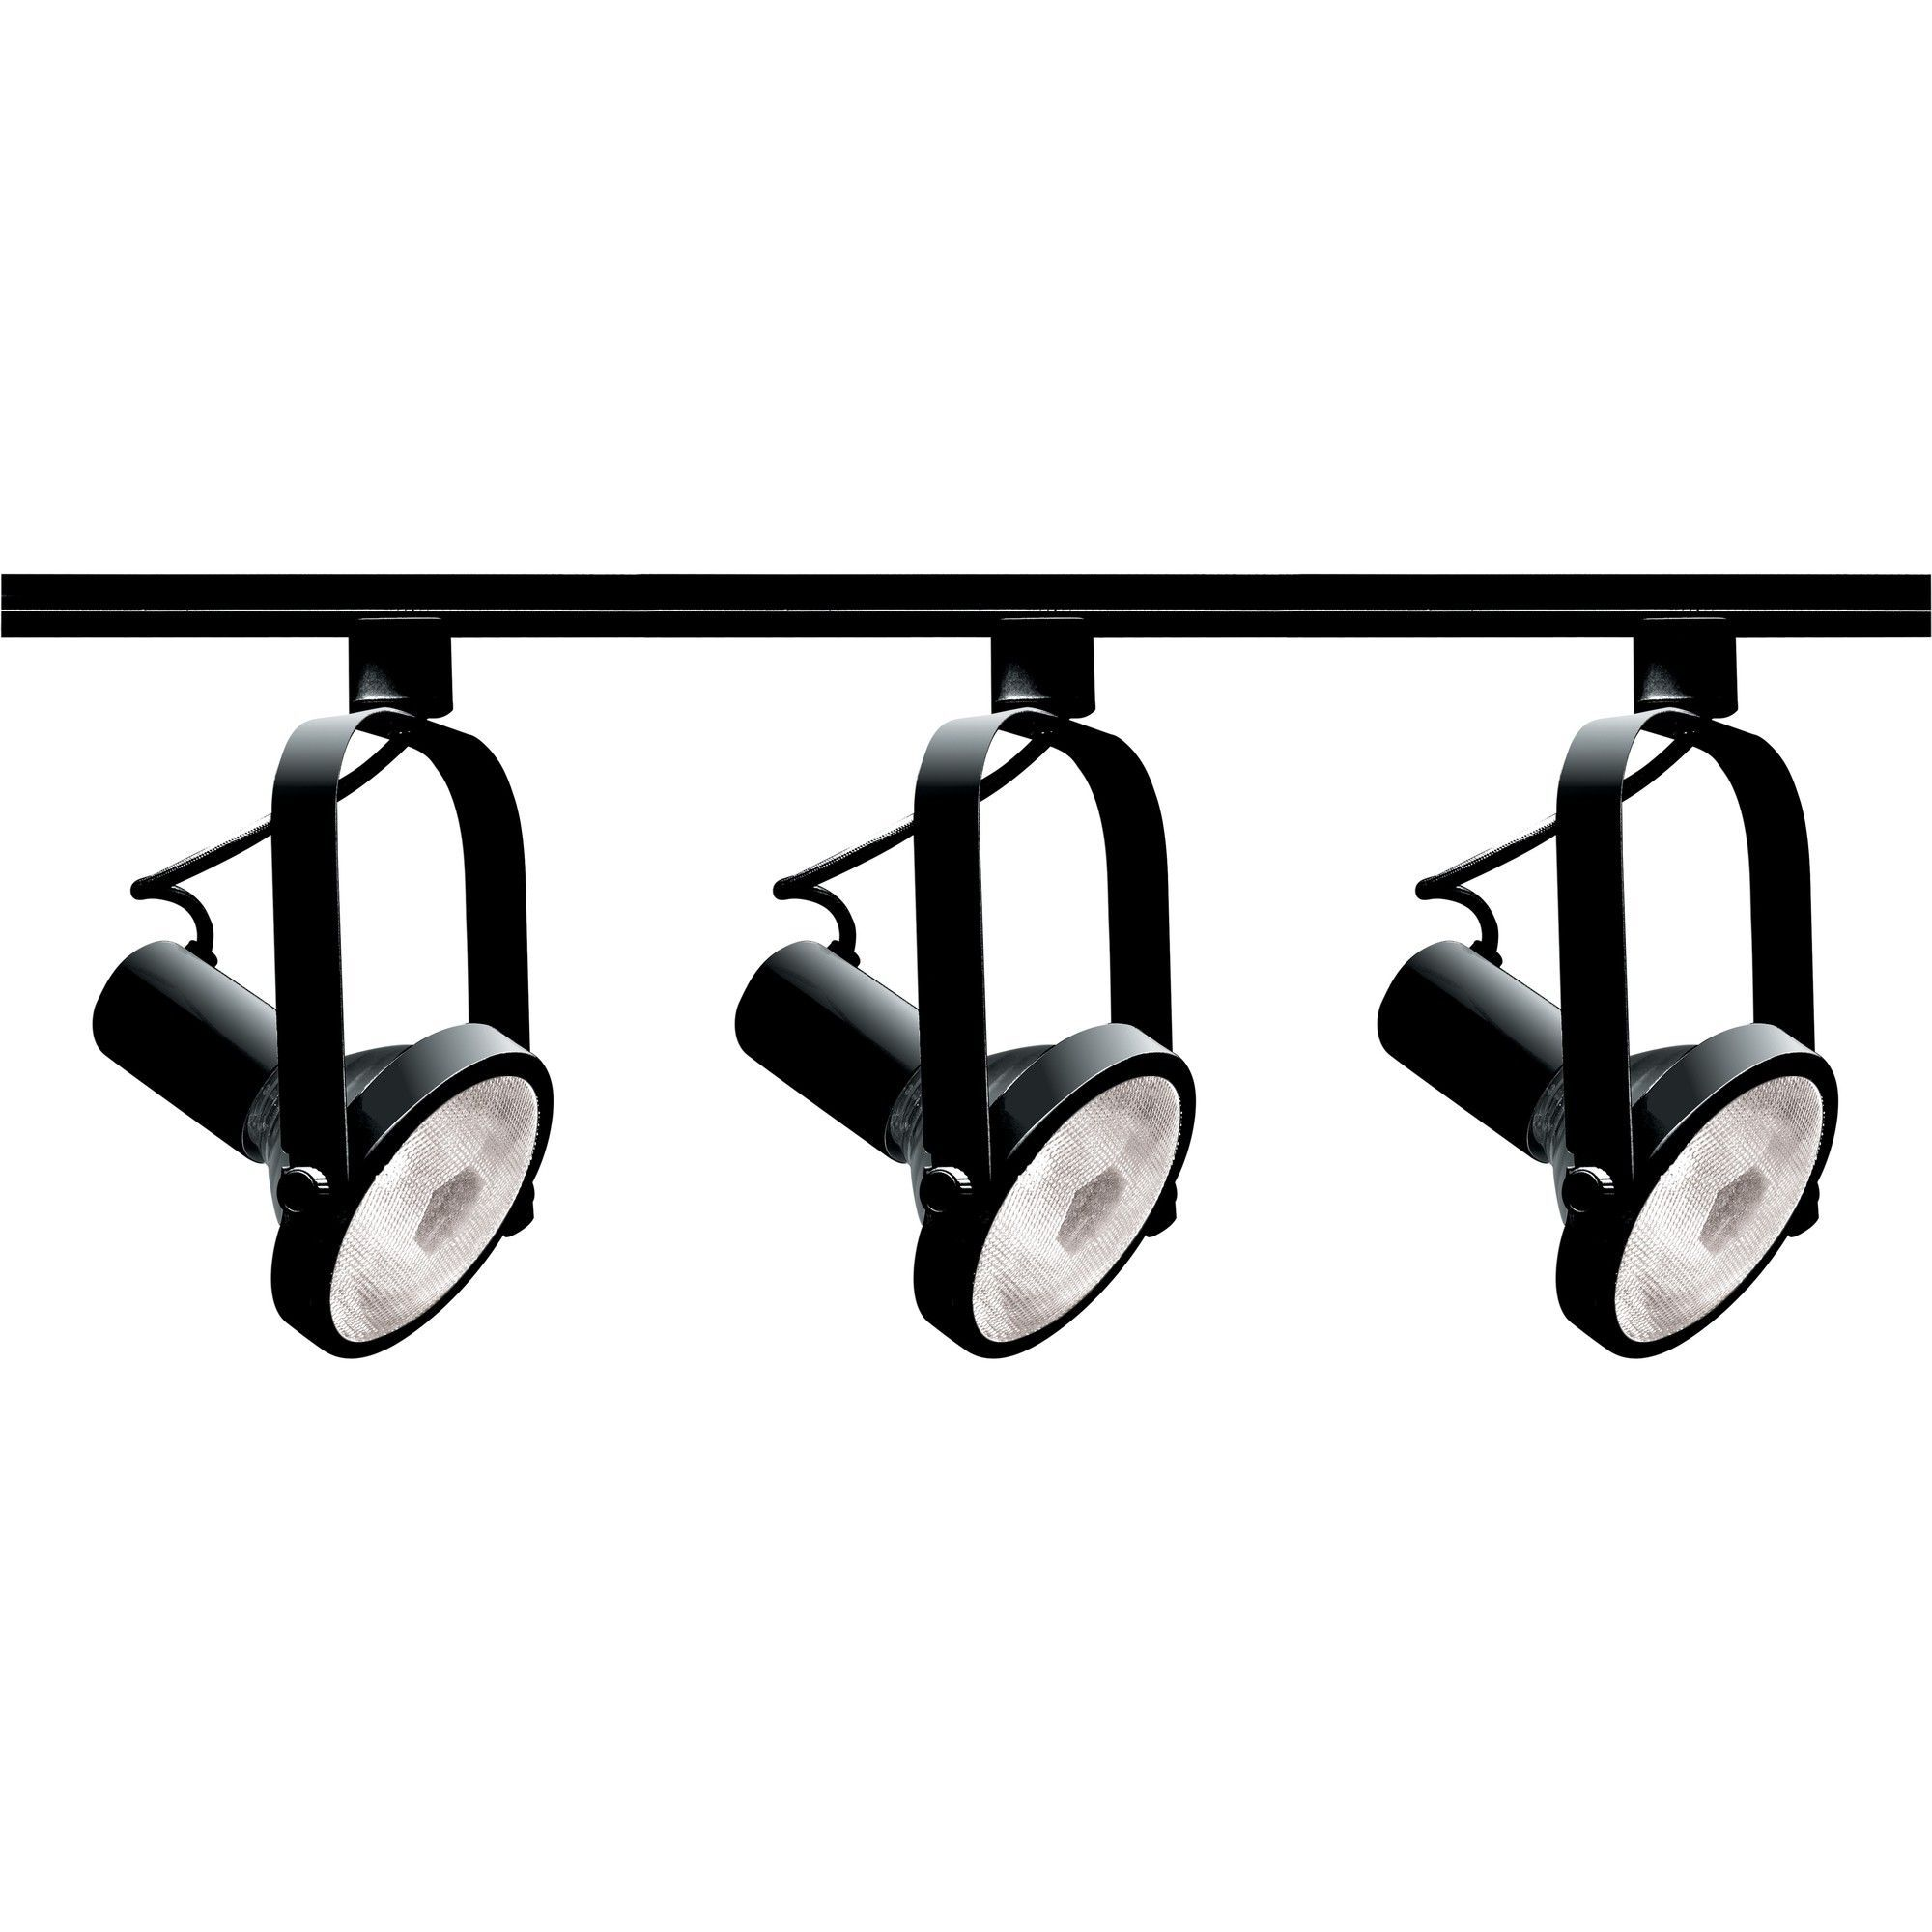 Track lighting styles transitional fantastic juno track lighting track lighting styles transitional features track light kit transitional style aloadofball Choice Image